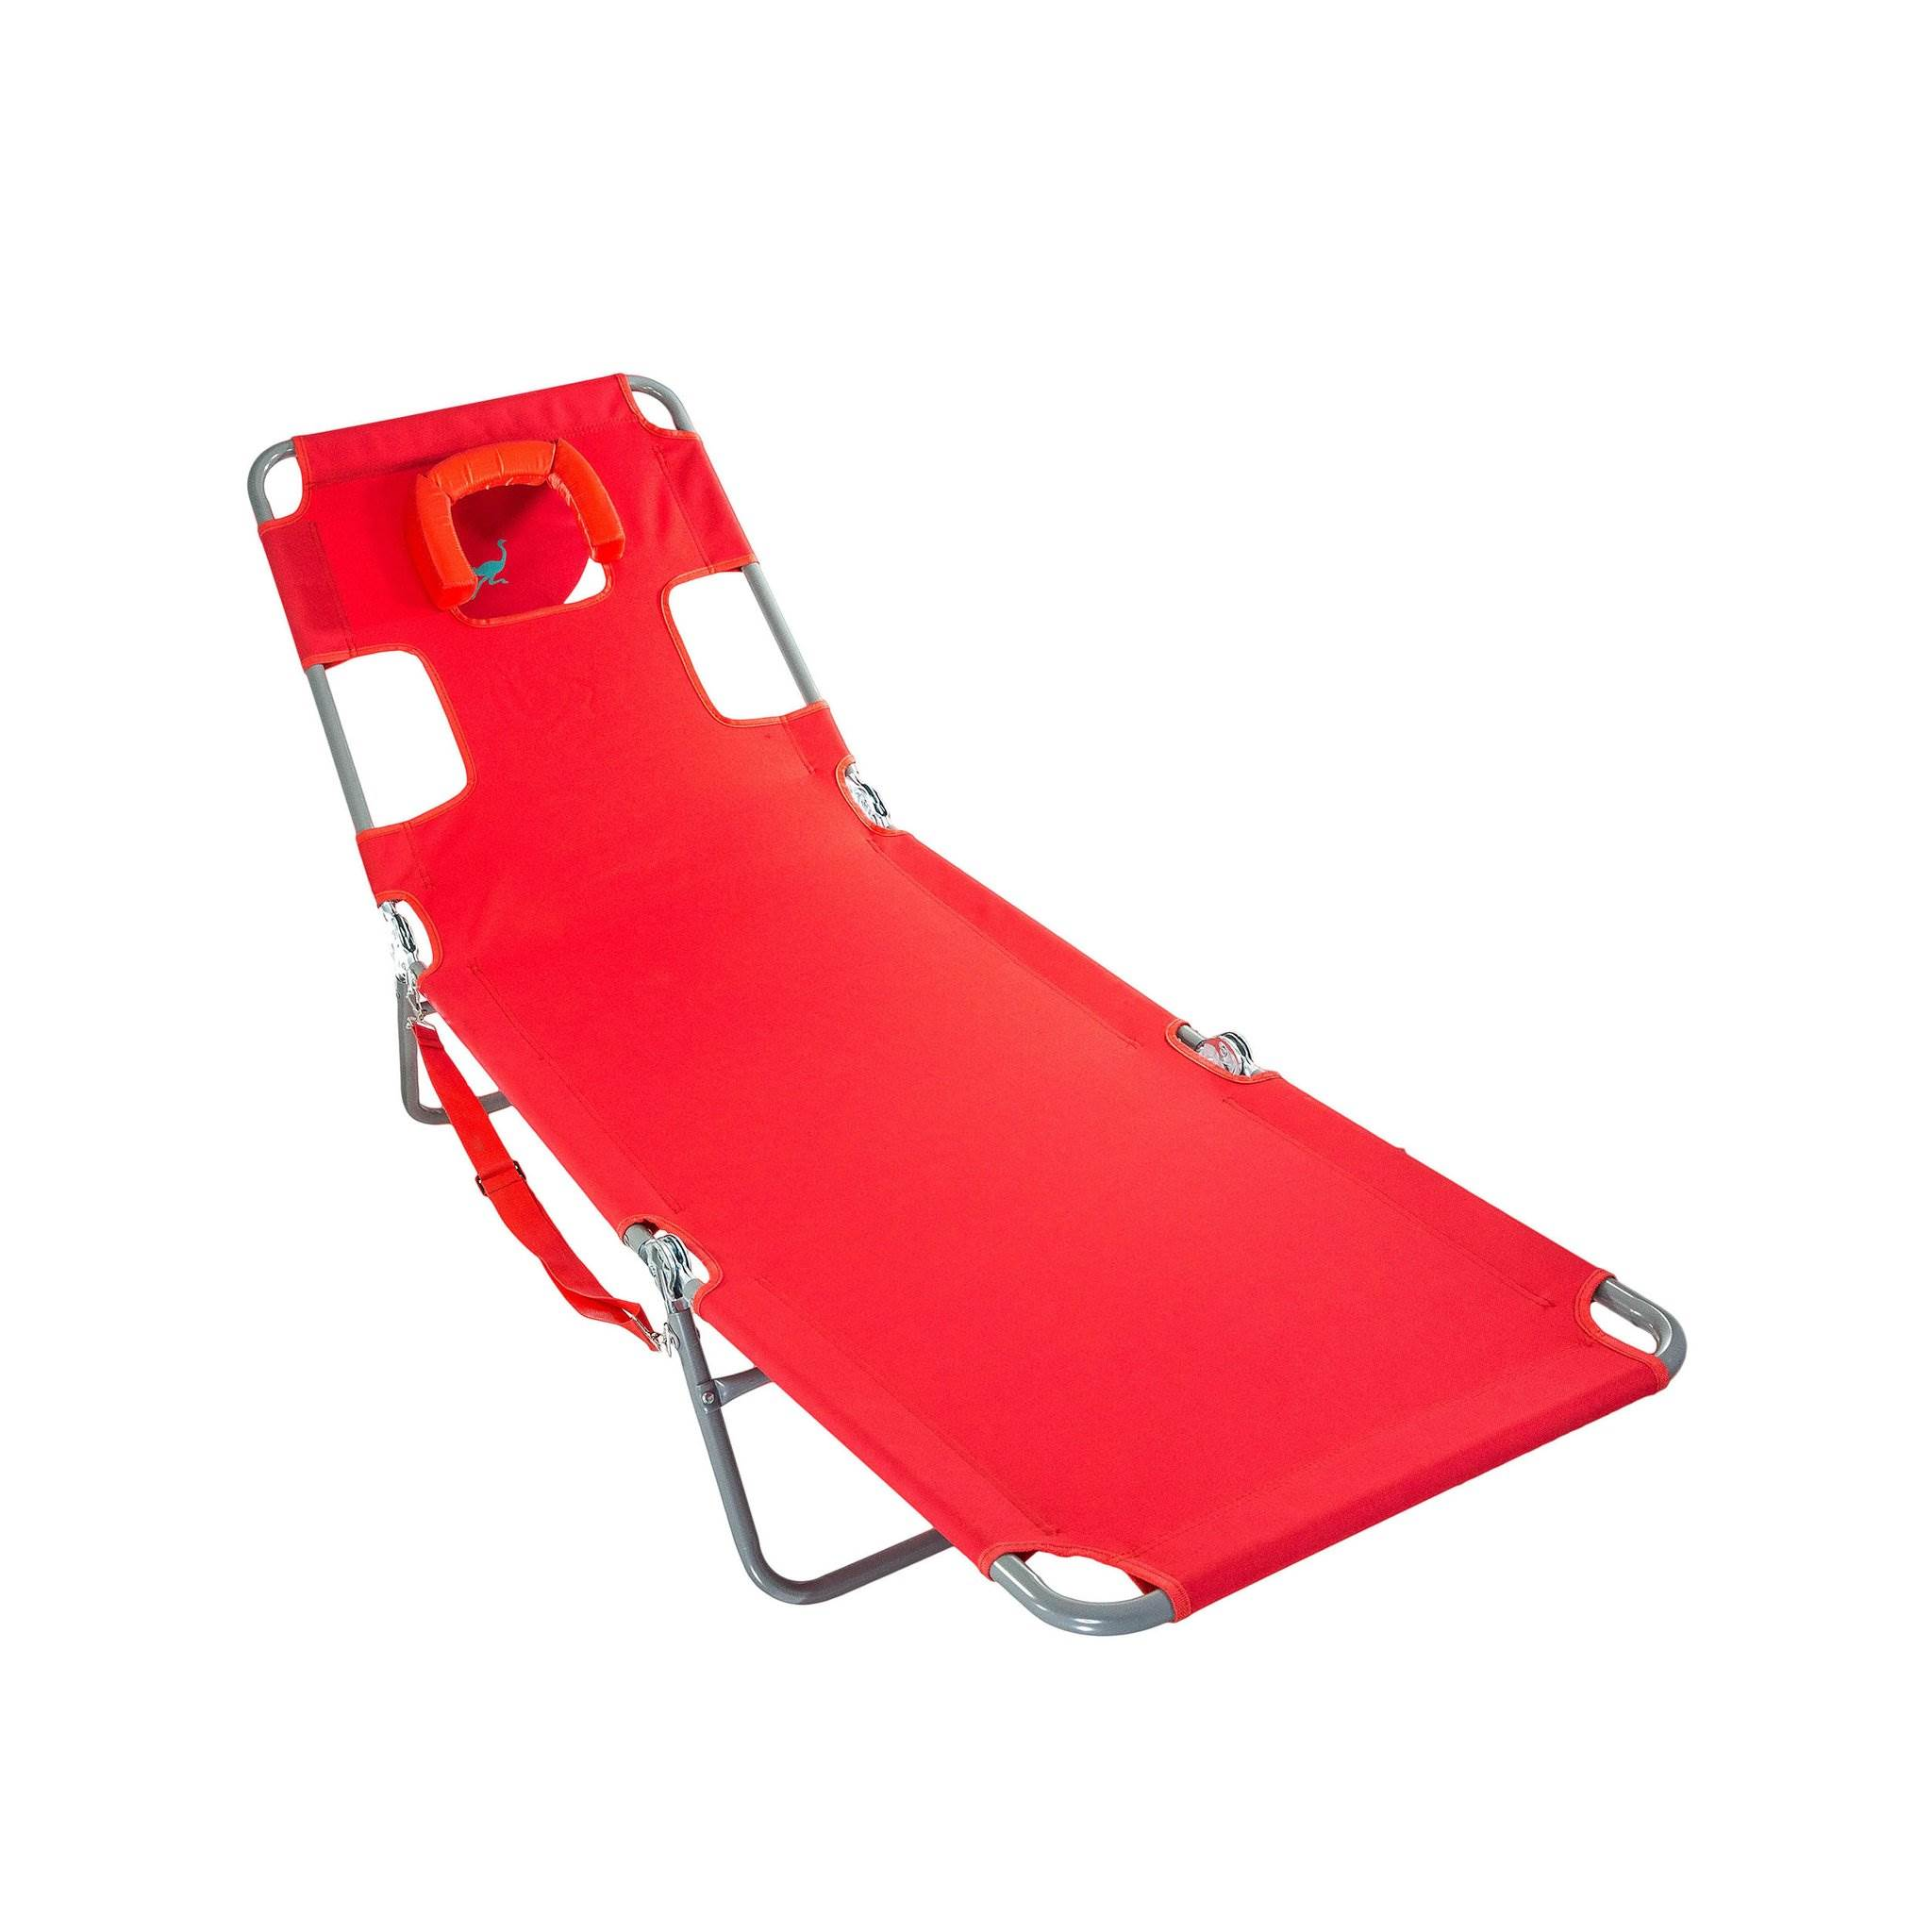 Ostrich Chaise Lounge Folding Portable Sunbathing Poolside ...